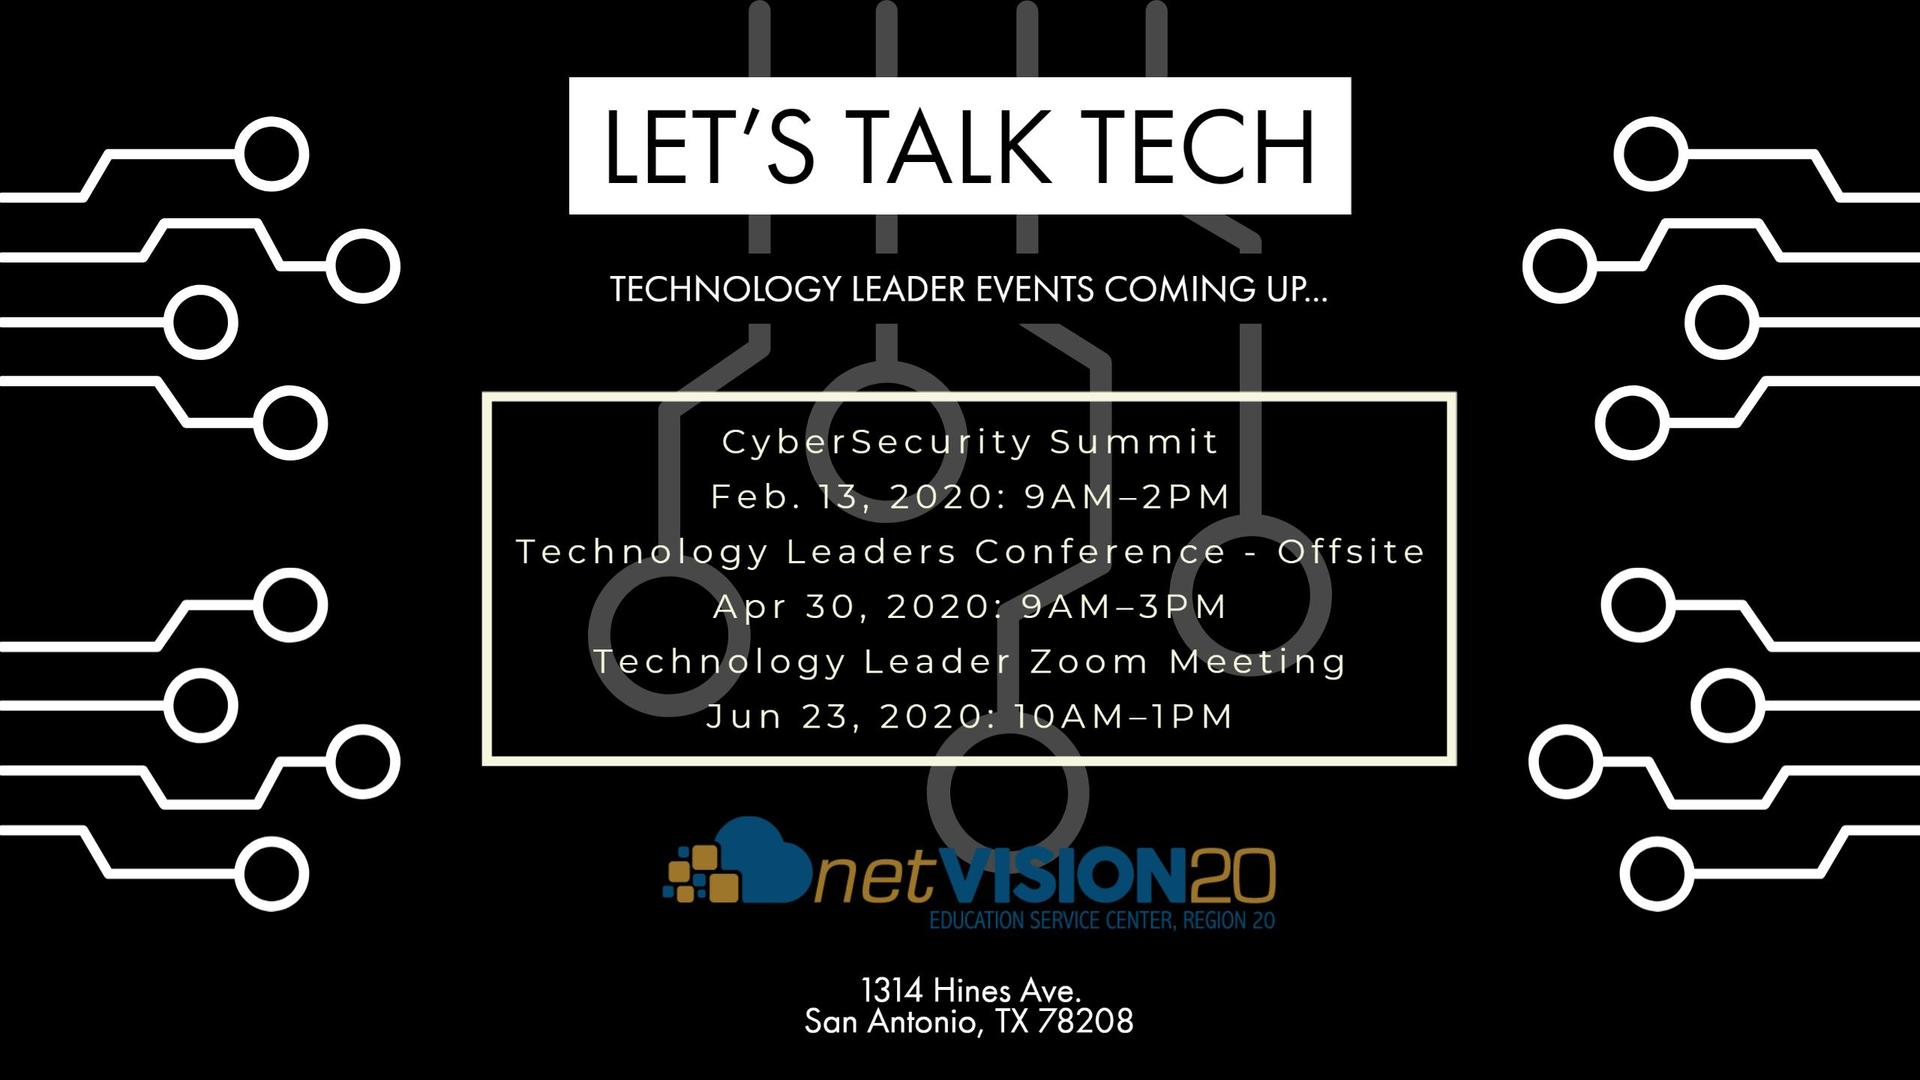 Let's Talk Tech,Technology Leader Events Coming up...